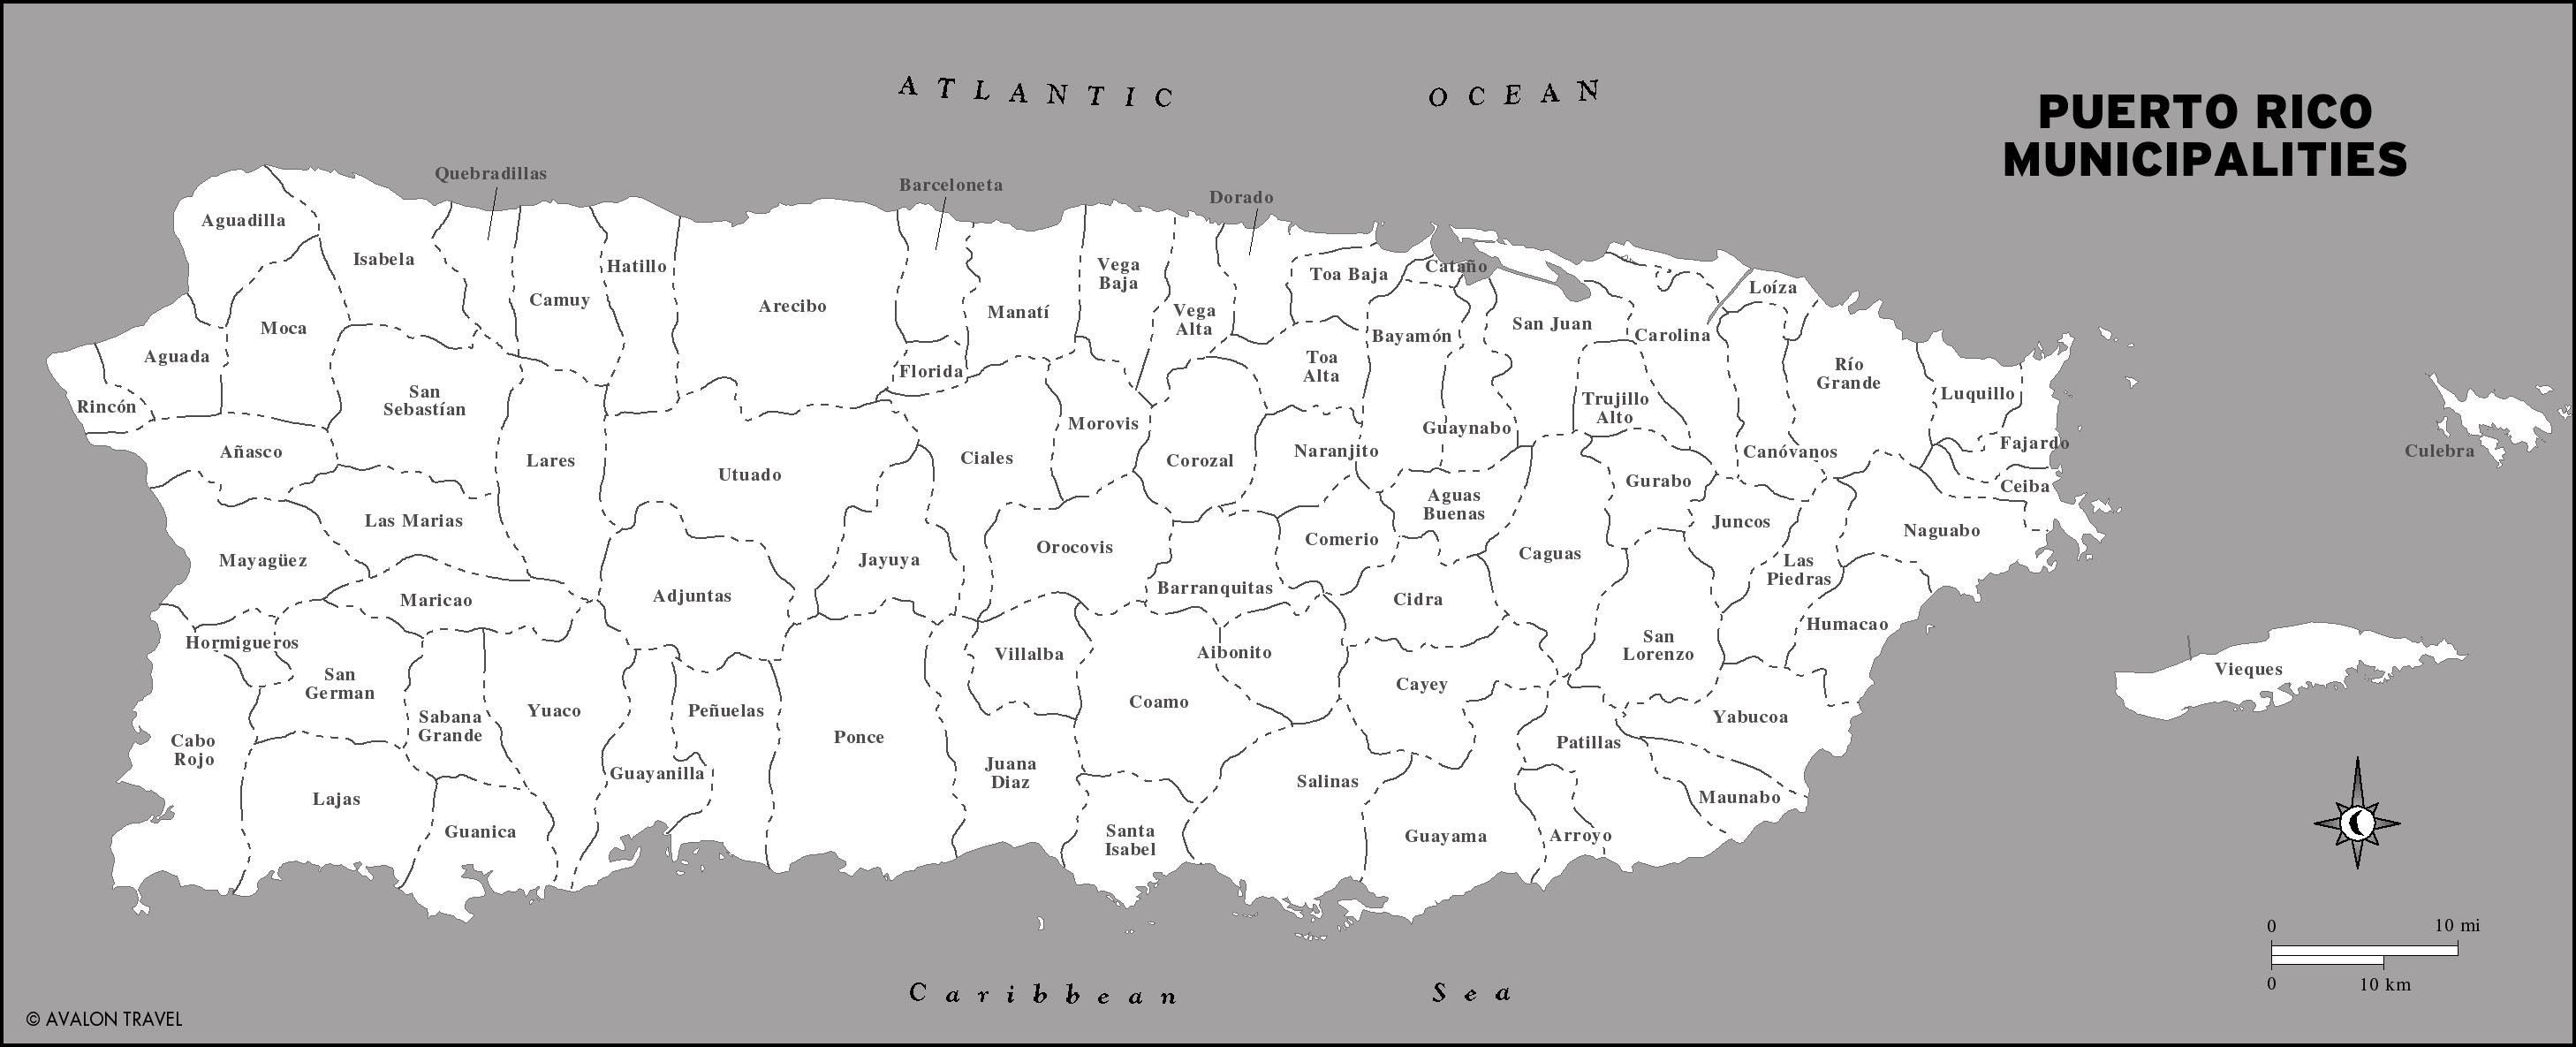 Maps Of Puerto Rico Travel Maps San Juan And East Coast - Puerto rico cities towns map